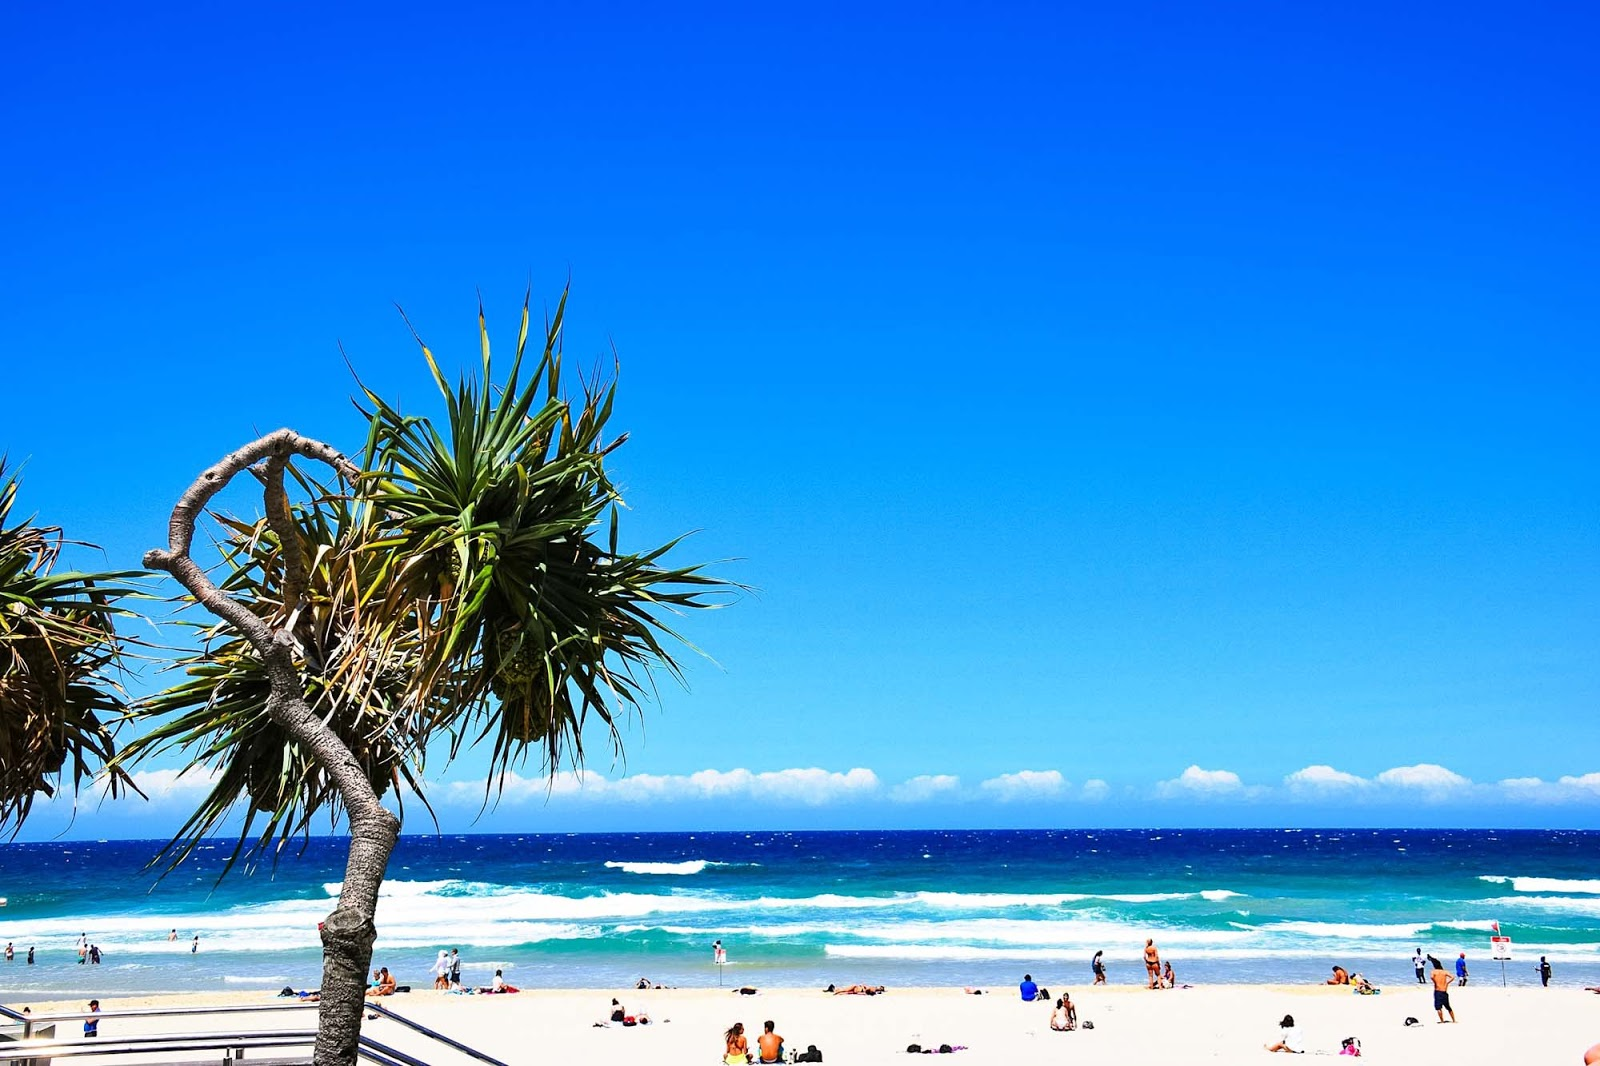 surfers paradise beach, gold coast queensland